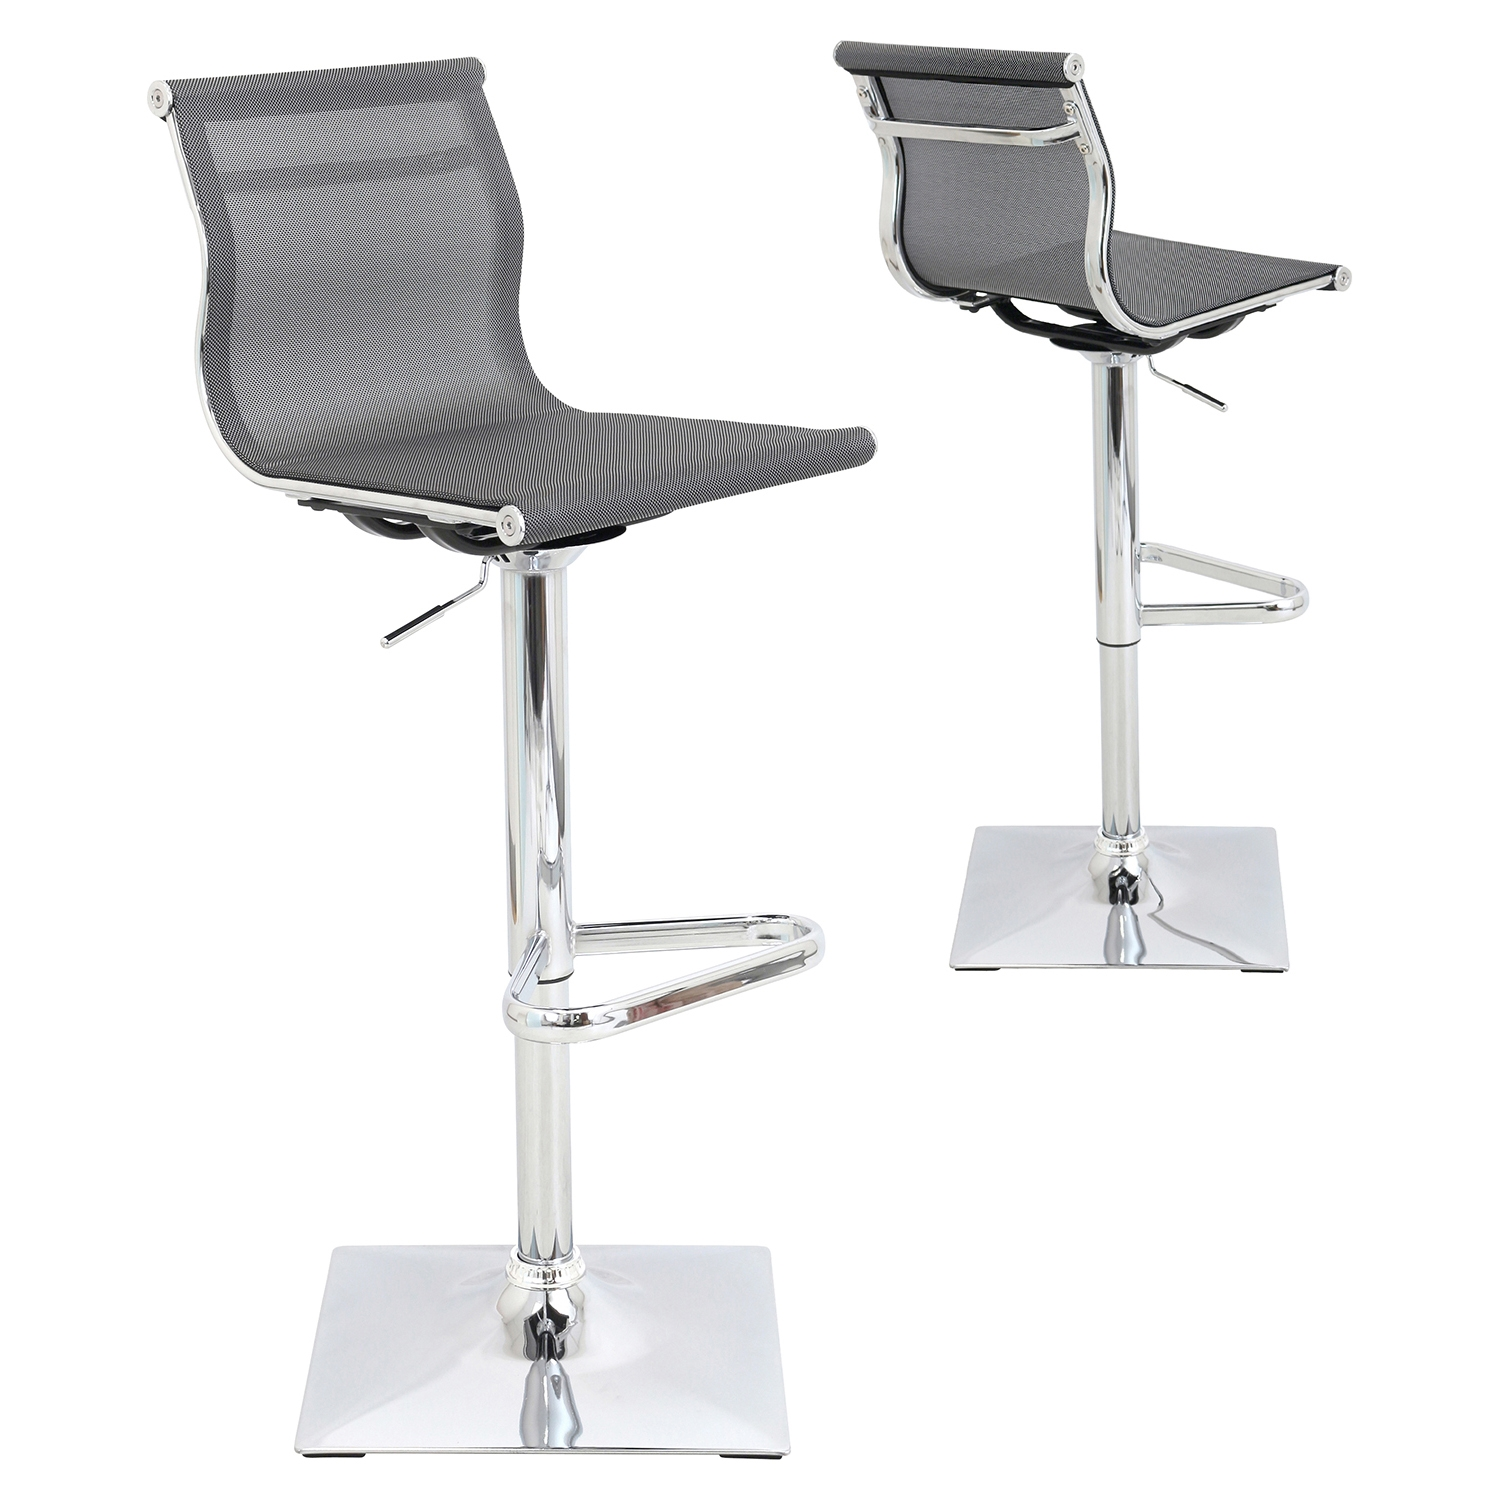 Mirage Height Adjustable Barstool - Swivel, Silver - LMS-BS-TW-MIRAGE-SV